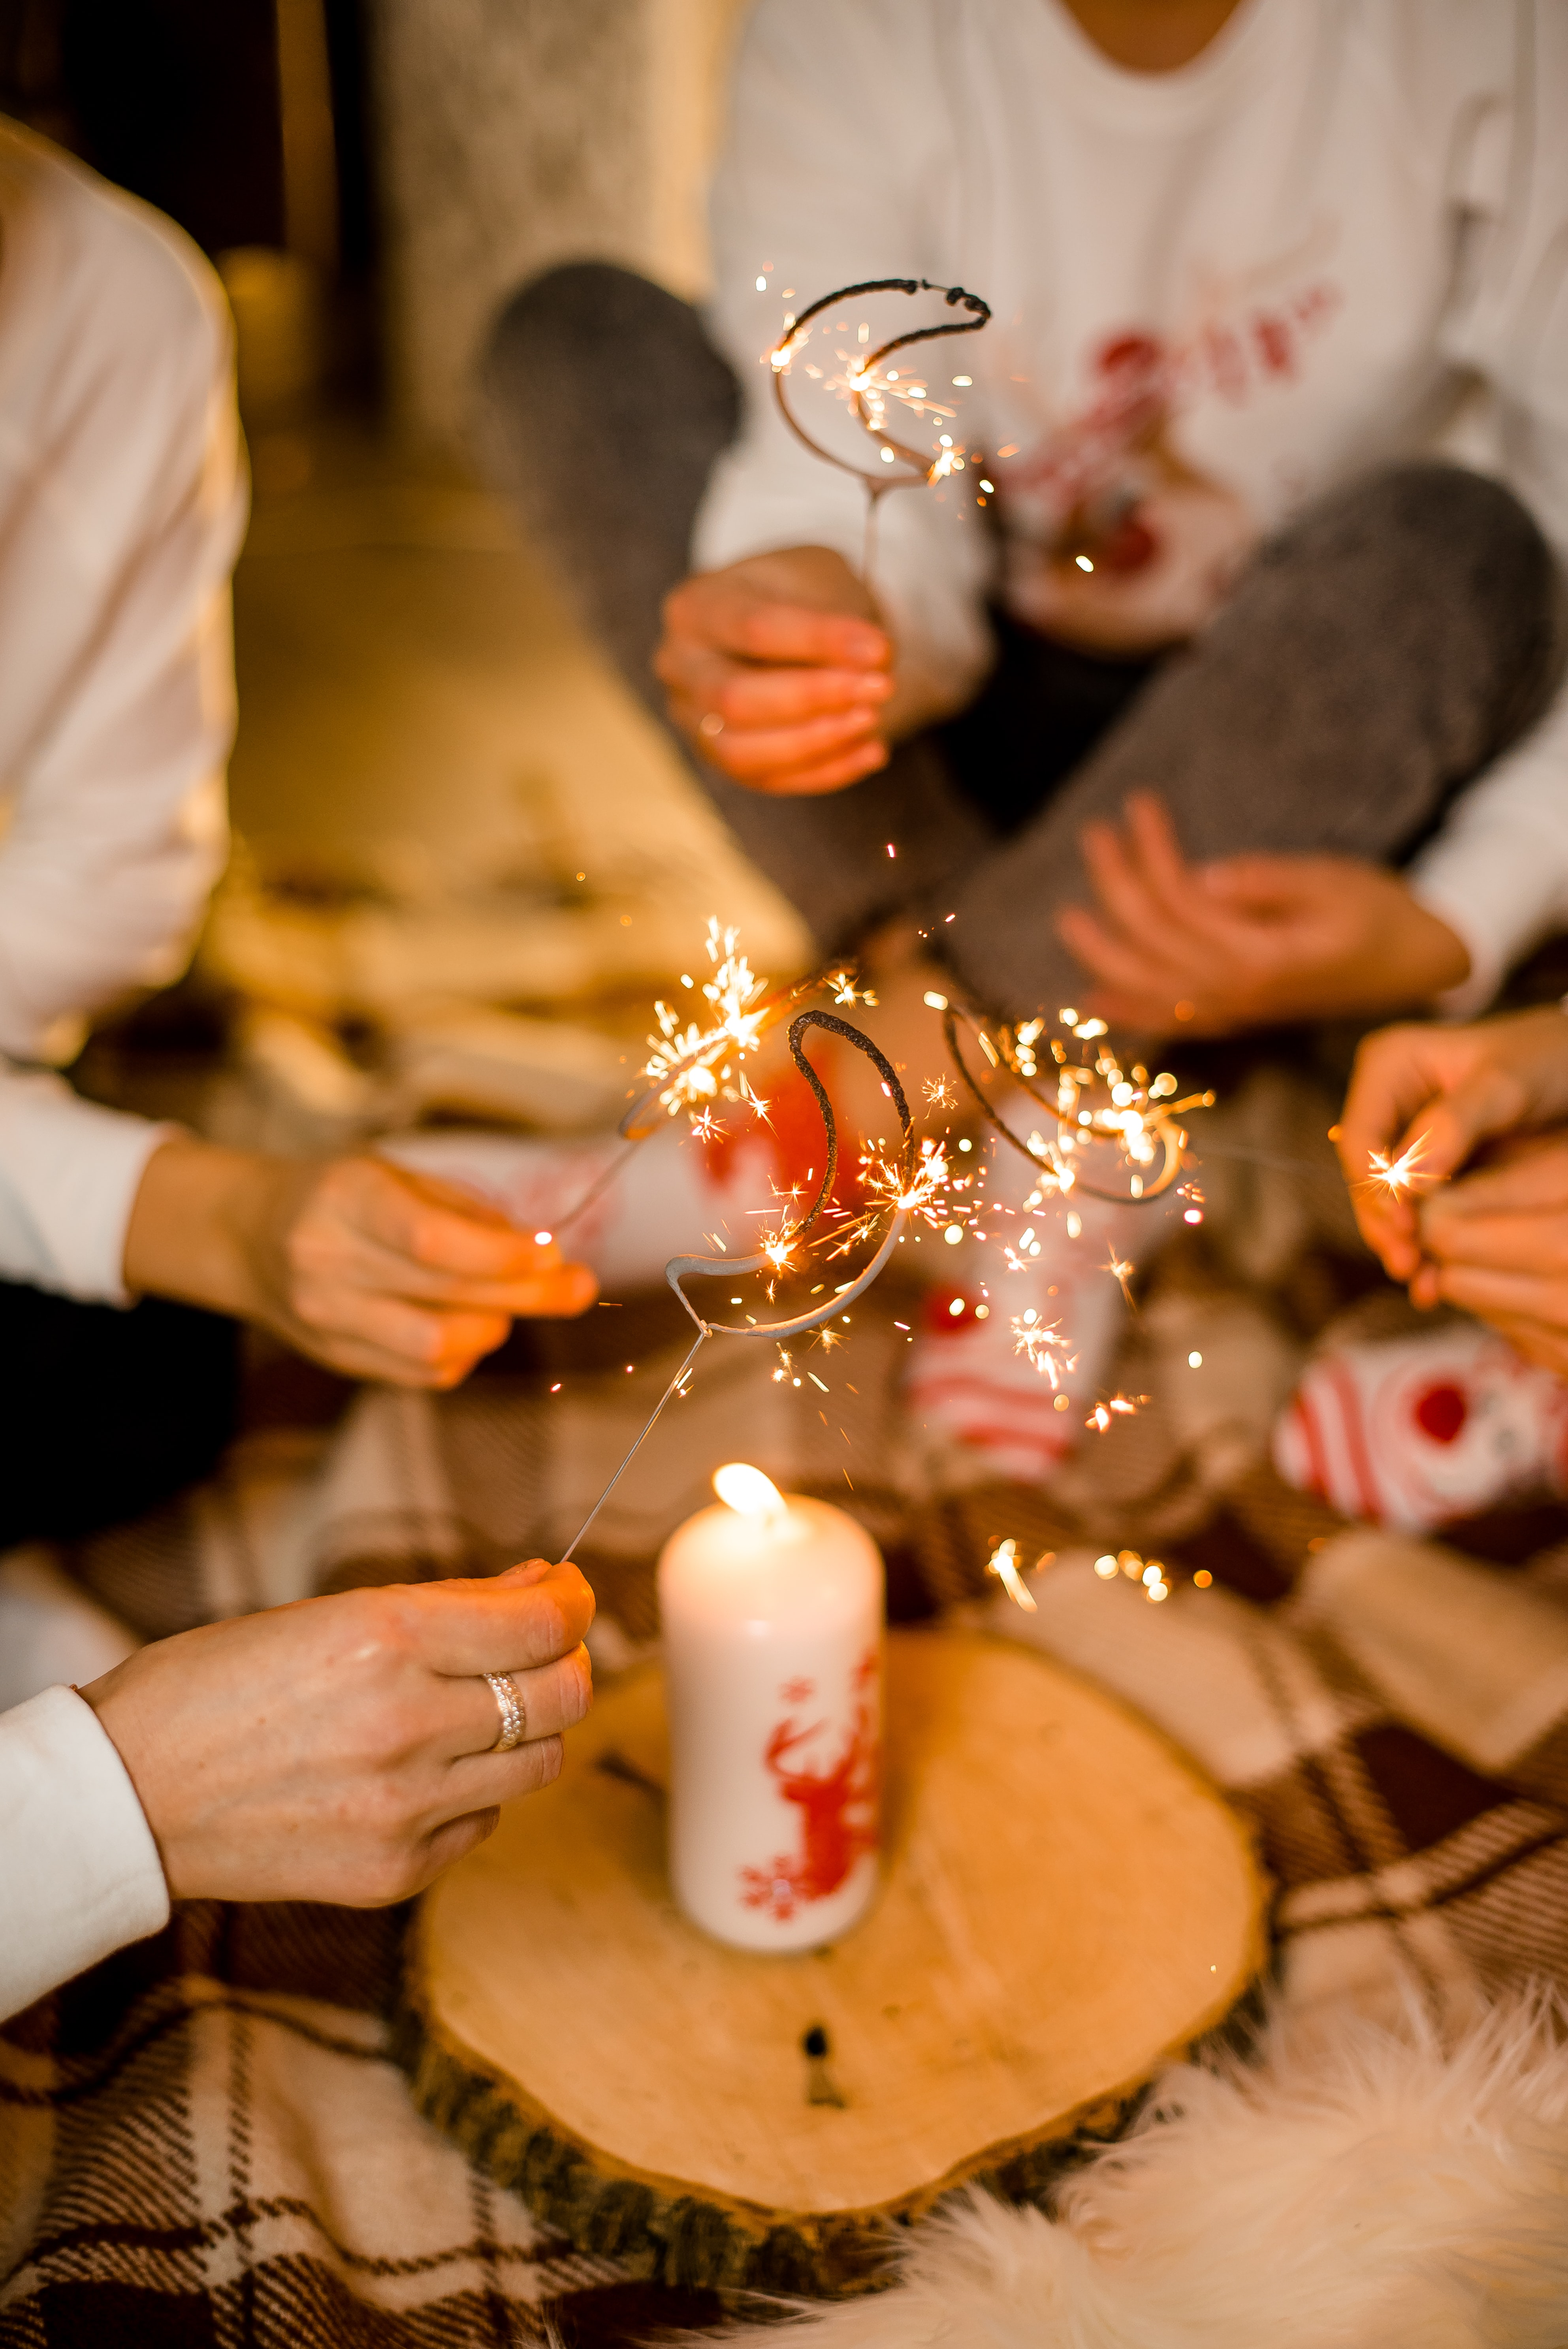 119794 download wallpaper People, Holidays, Sparks, Holiday, Bengal Lights, Sparklers, Candle screensavers and pictures for free